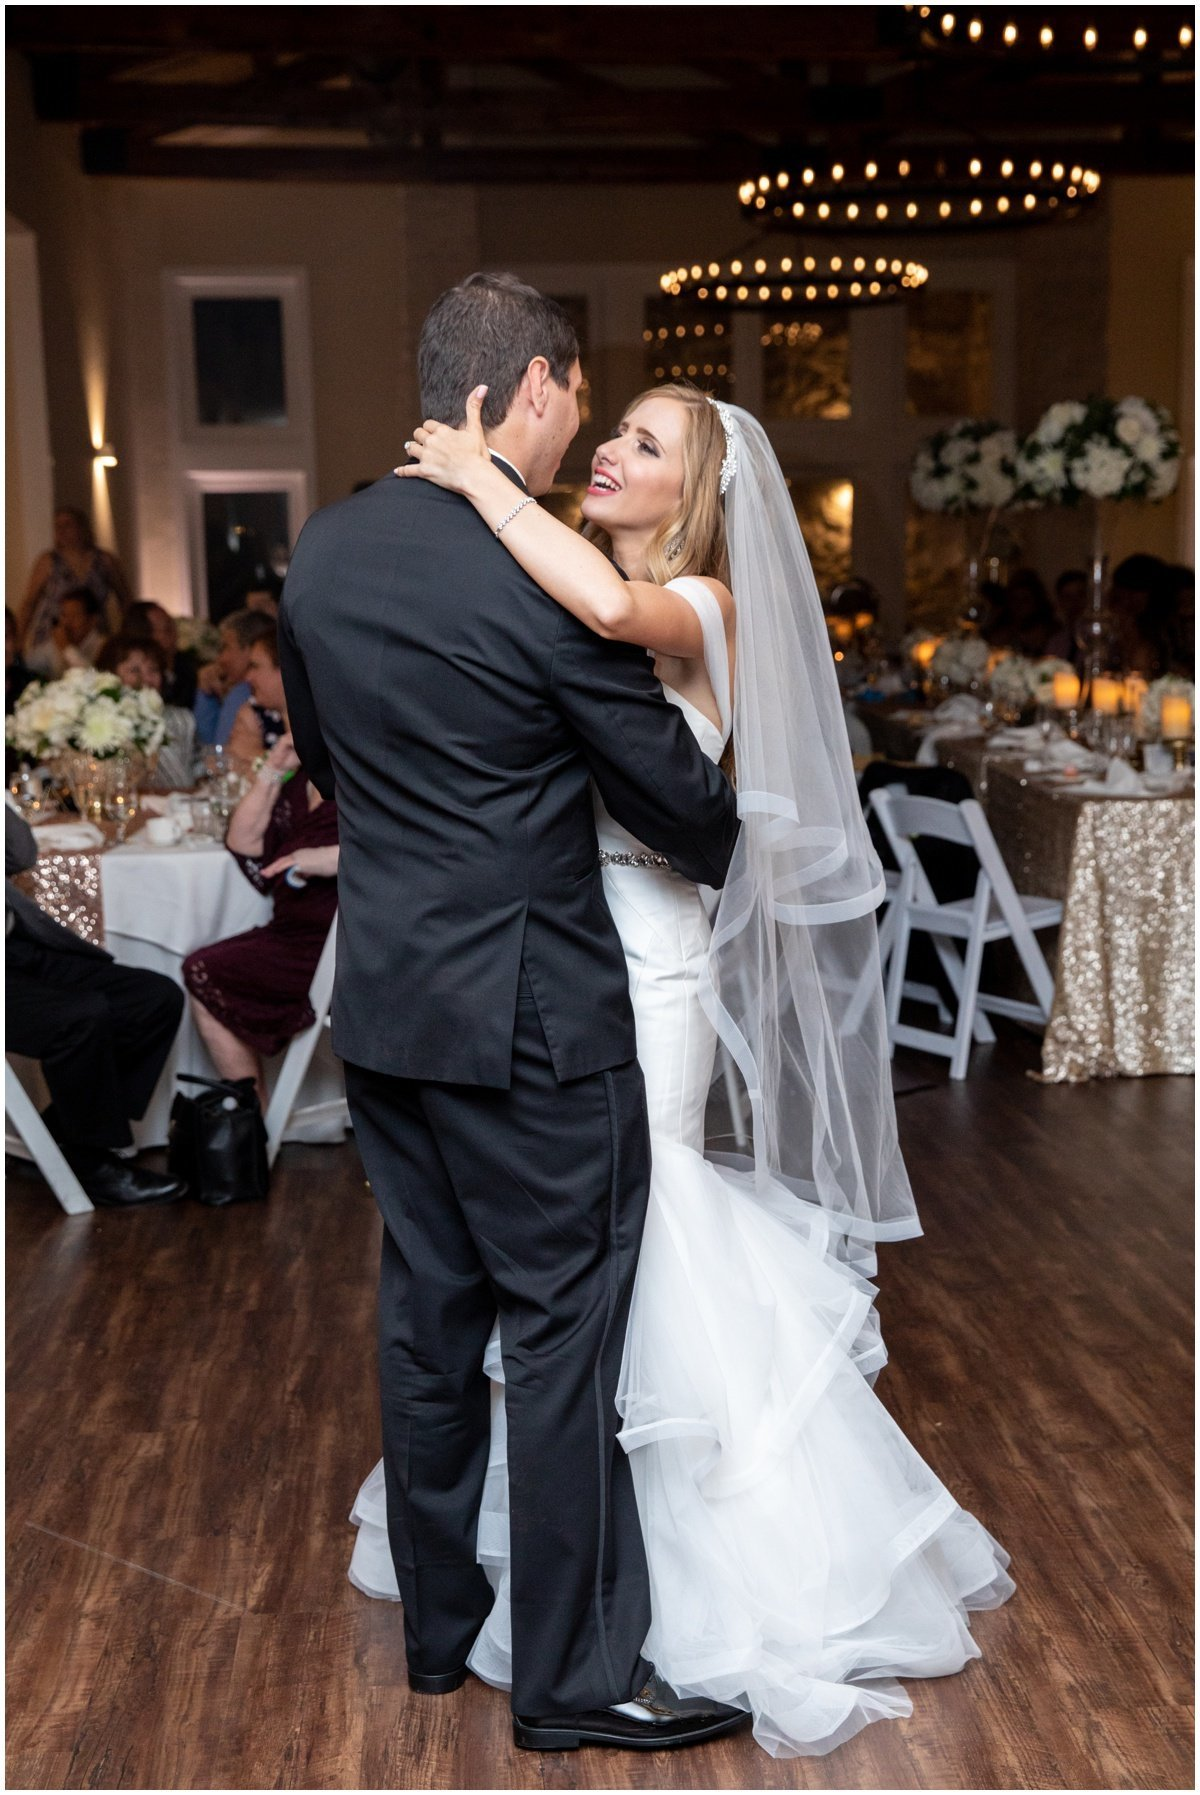 austin wedding photographer vintage villas first dance 4209 Eck Ln, Austin, TX 78734